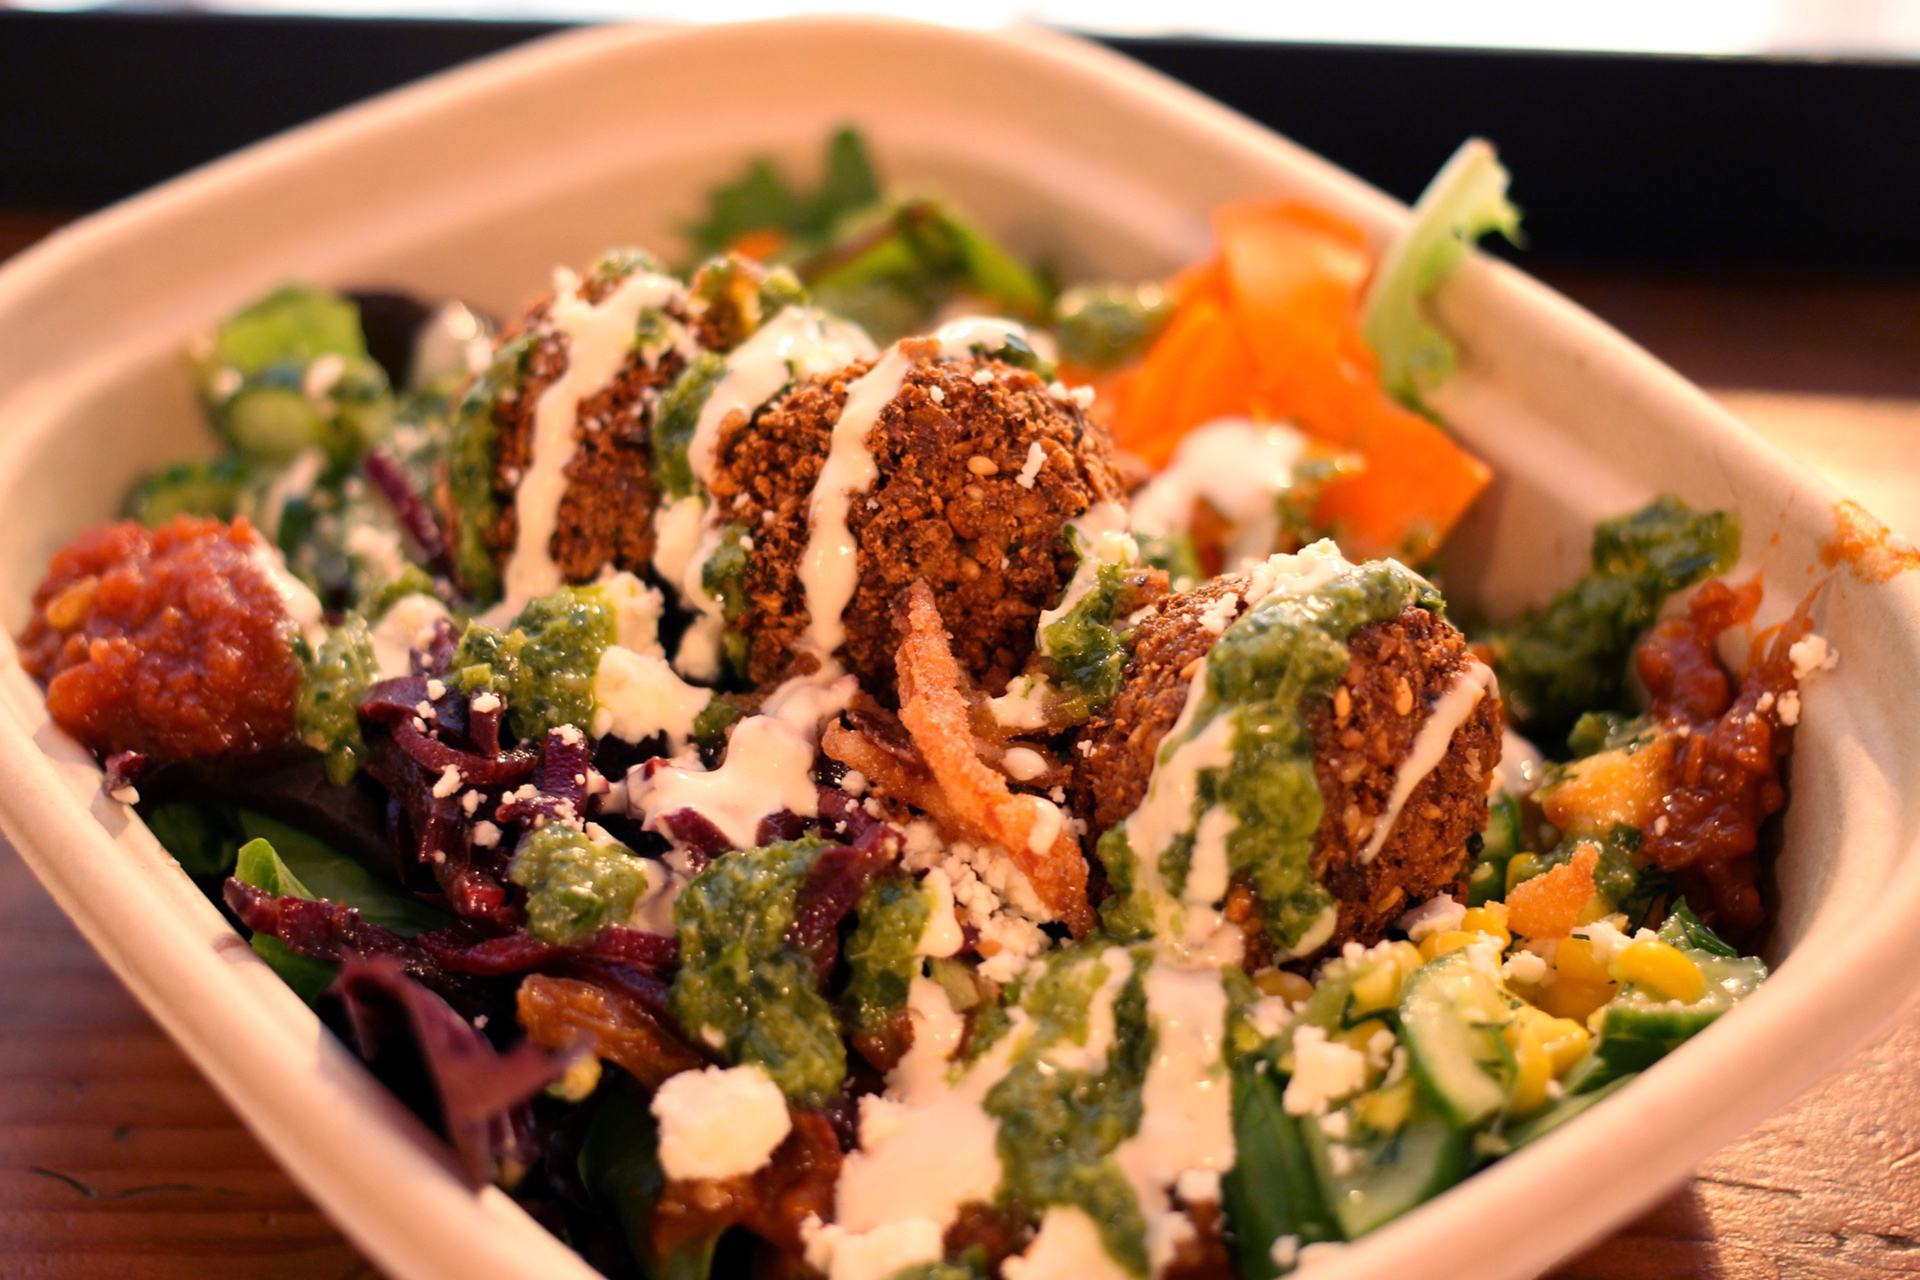 The falafel salad with all the toppings at Liba Falafel in Oakland.